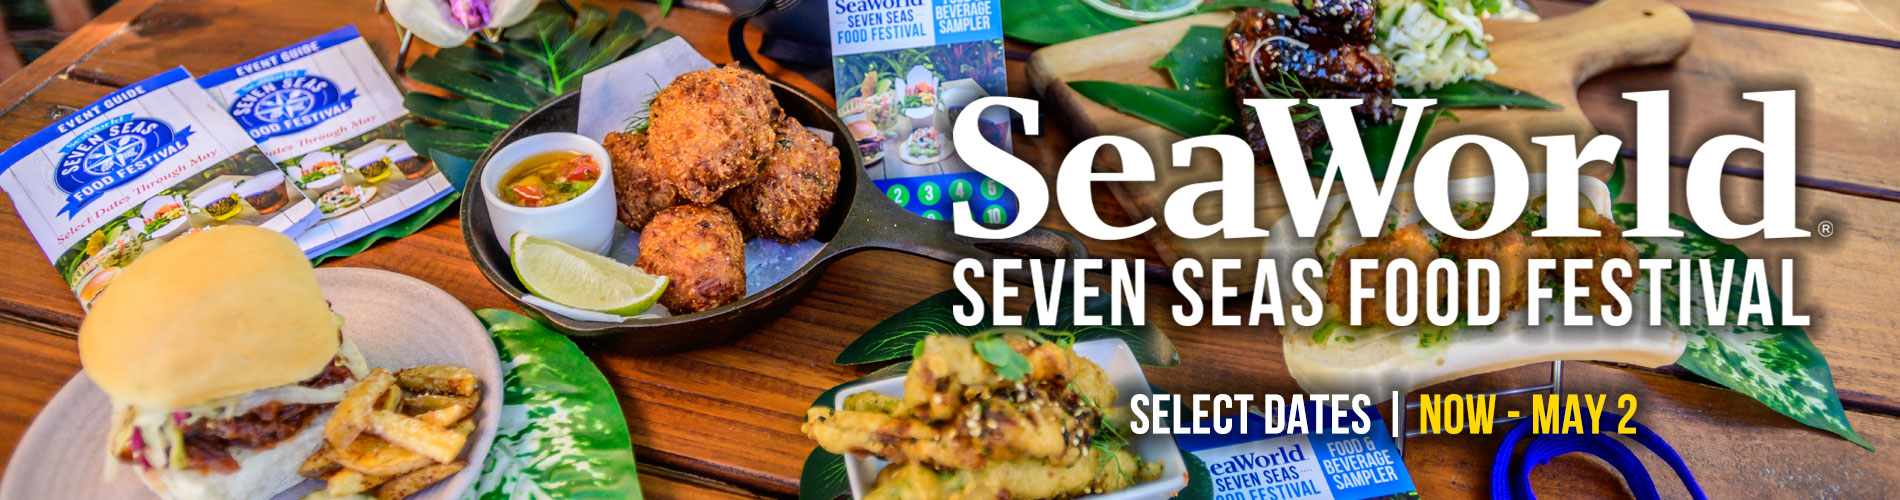 Seven Seas Food Festival at SeaWorld San Diego Now through May 2